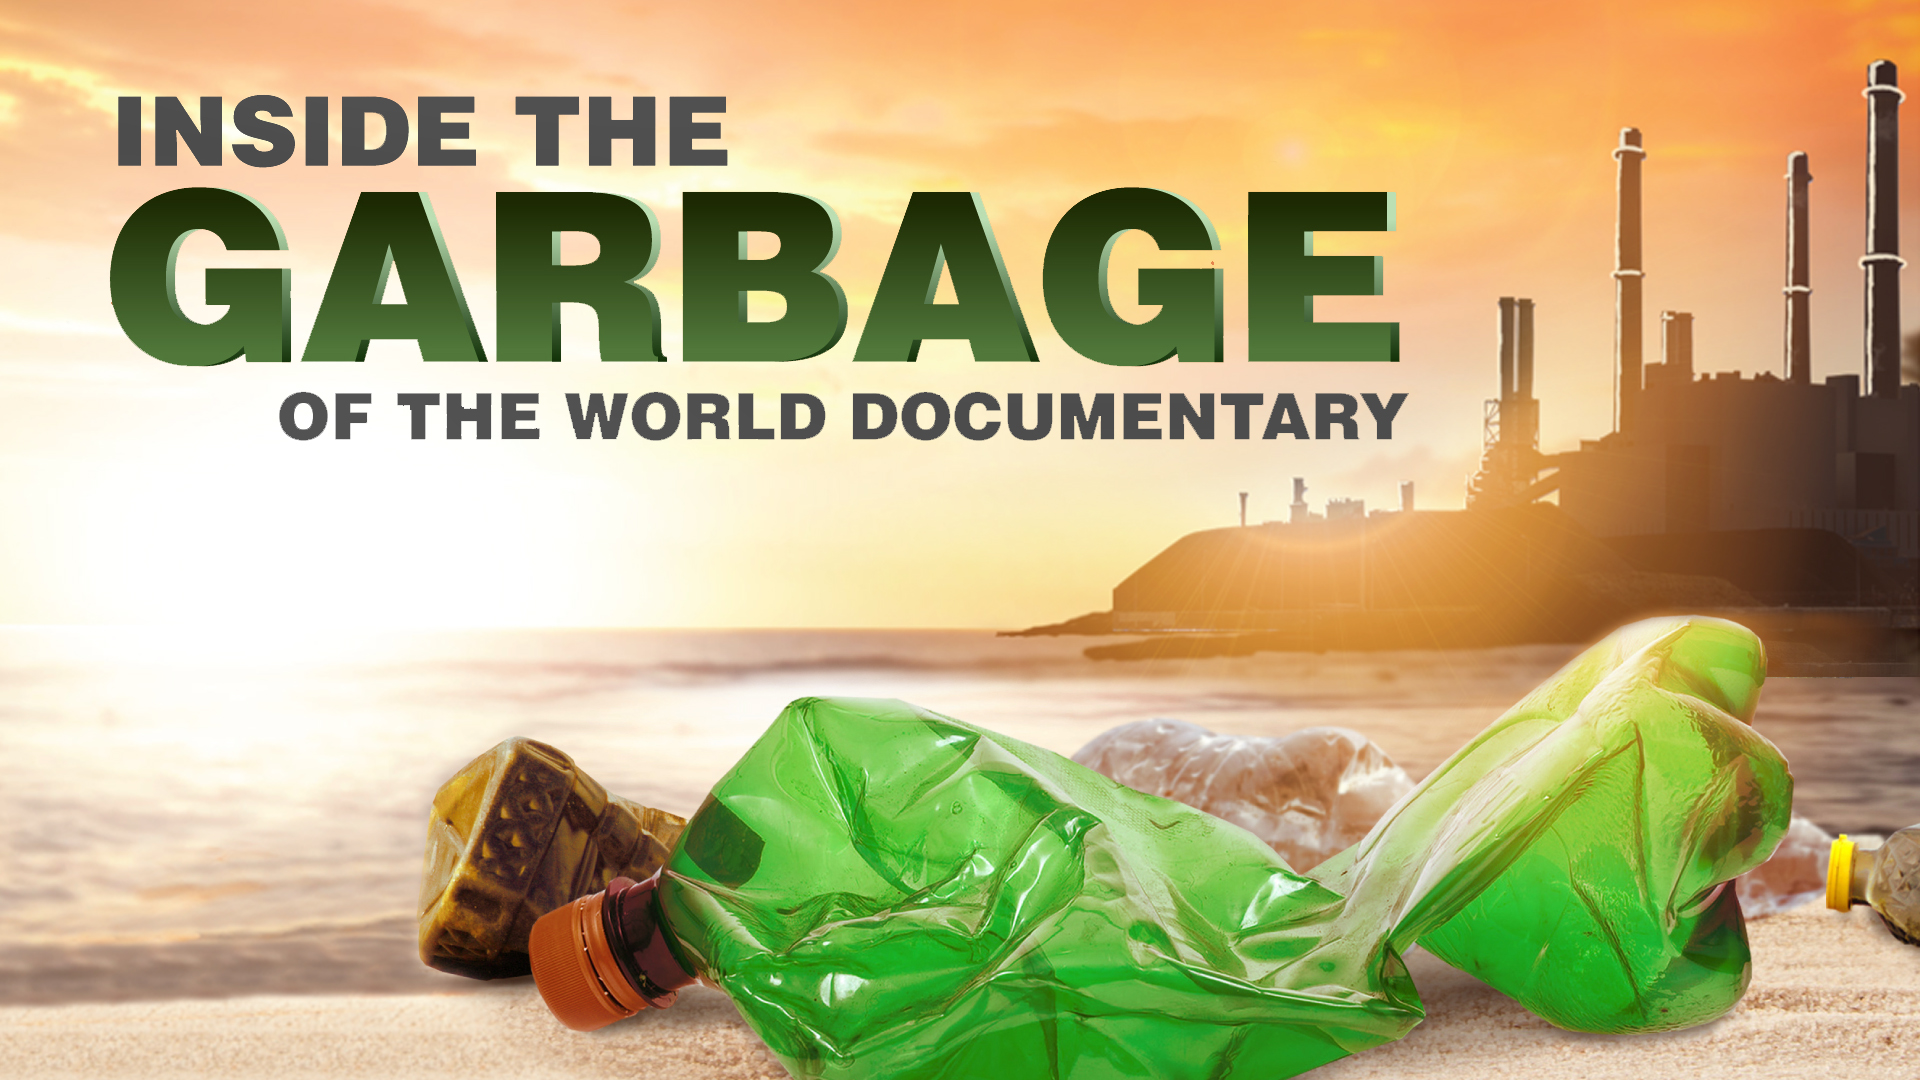 Inside the Garbage of the World